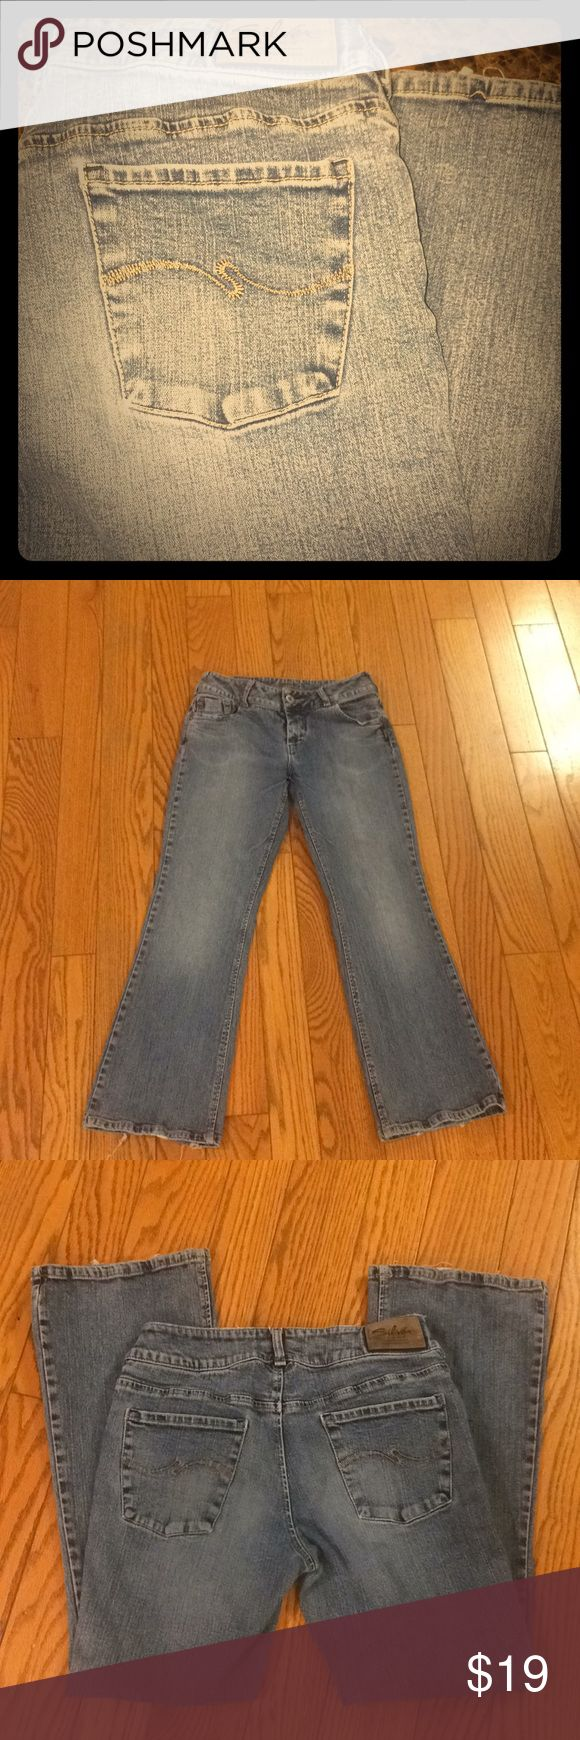 ✨ Silver Jeans Women's Bootcut Size 30 Silver women's jeans, bootcut, size 30, 30 inch inseam. Vintage type wash, super cute! Worn but well taken care of, no holes/stains etc. Small wear on the bottom of right pant leg hem, but nothing major, normal wear. Comes from smoke/pet free home. Silver Jeans Jeans Boot Cut